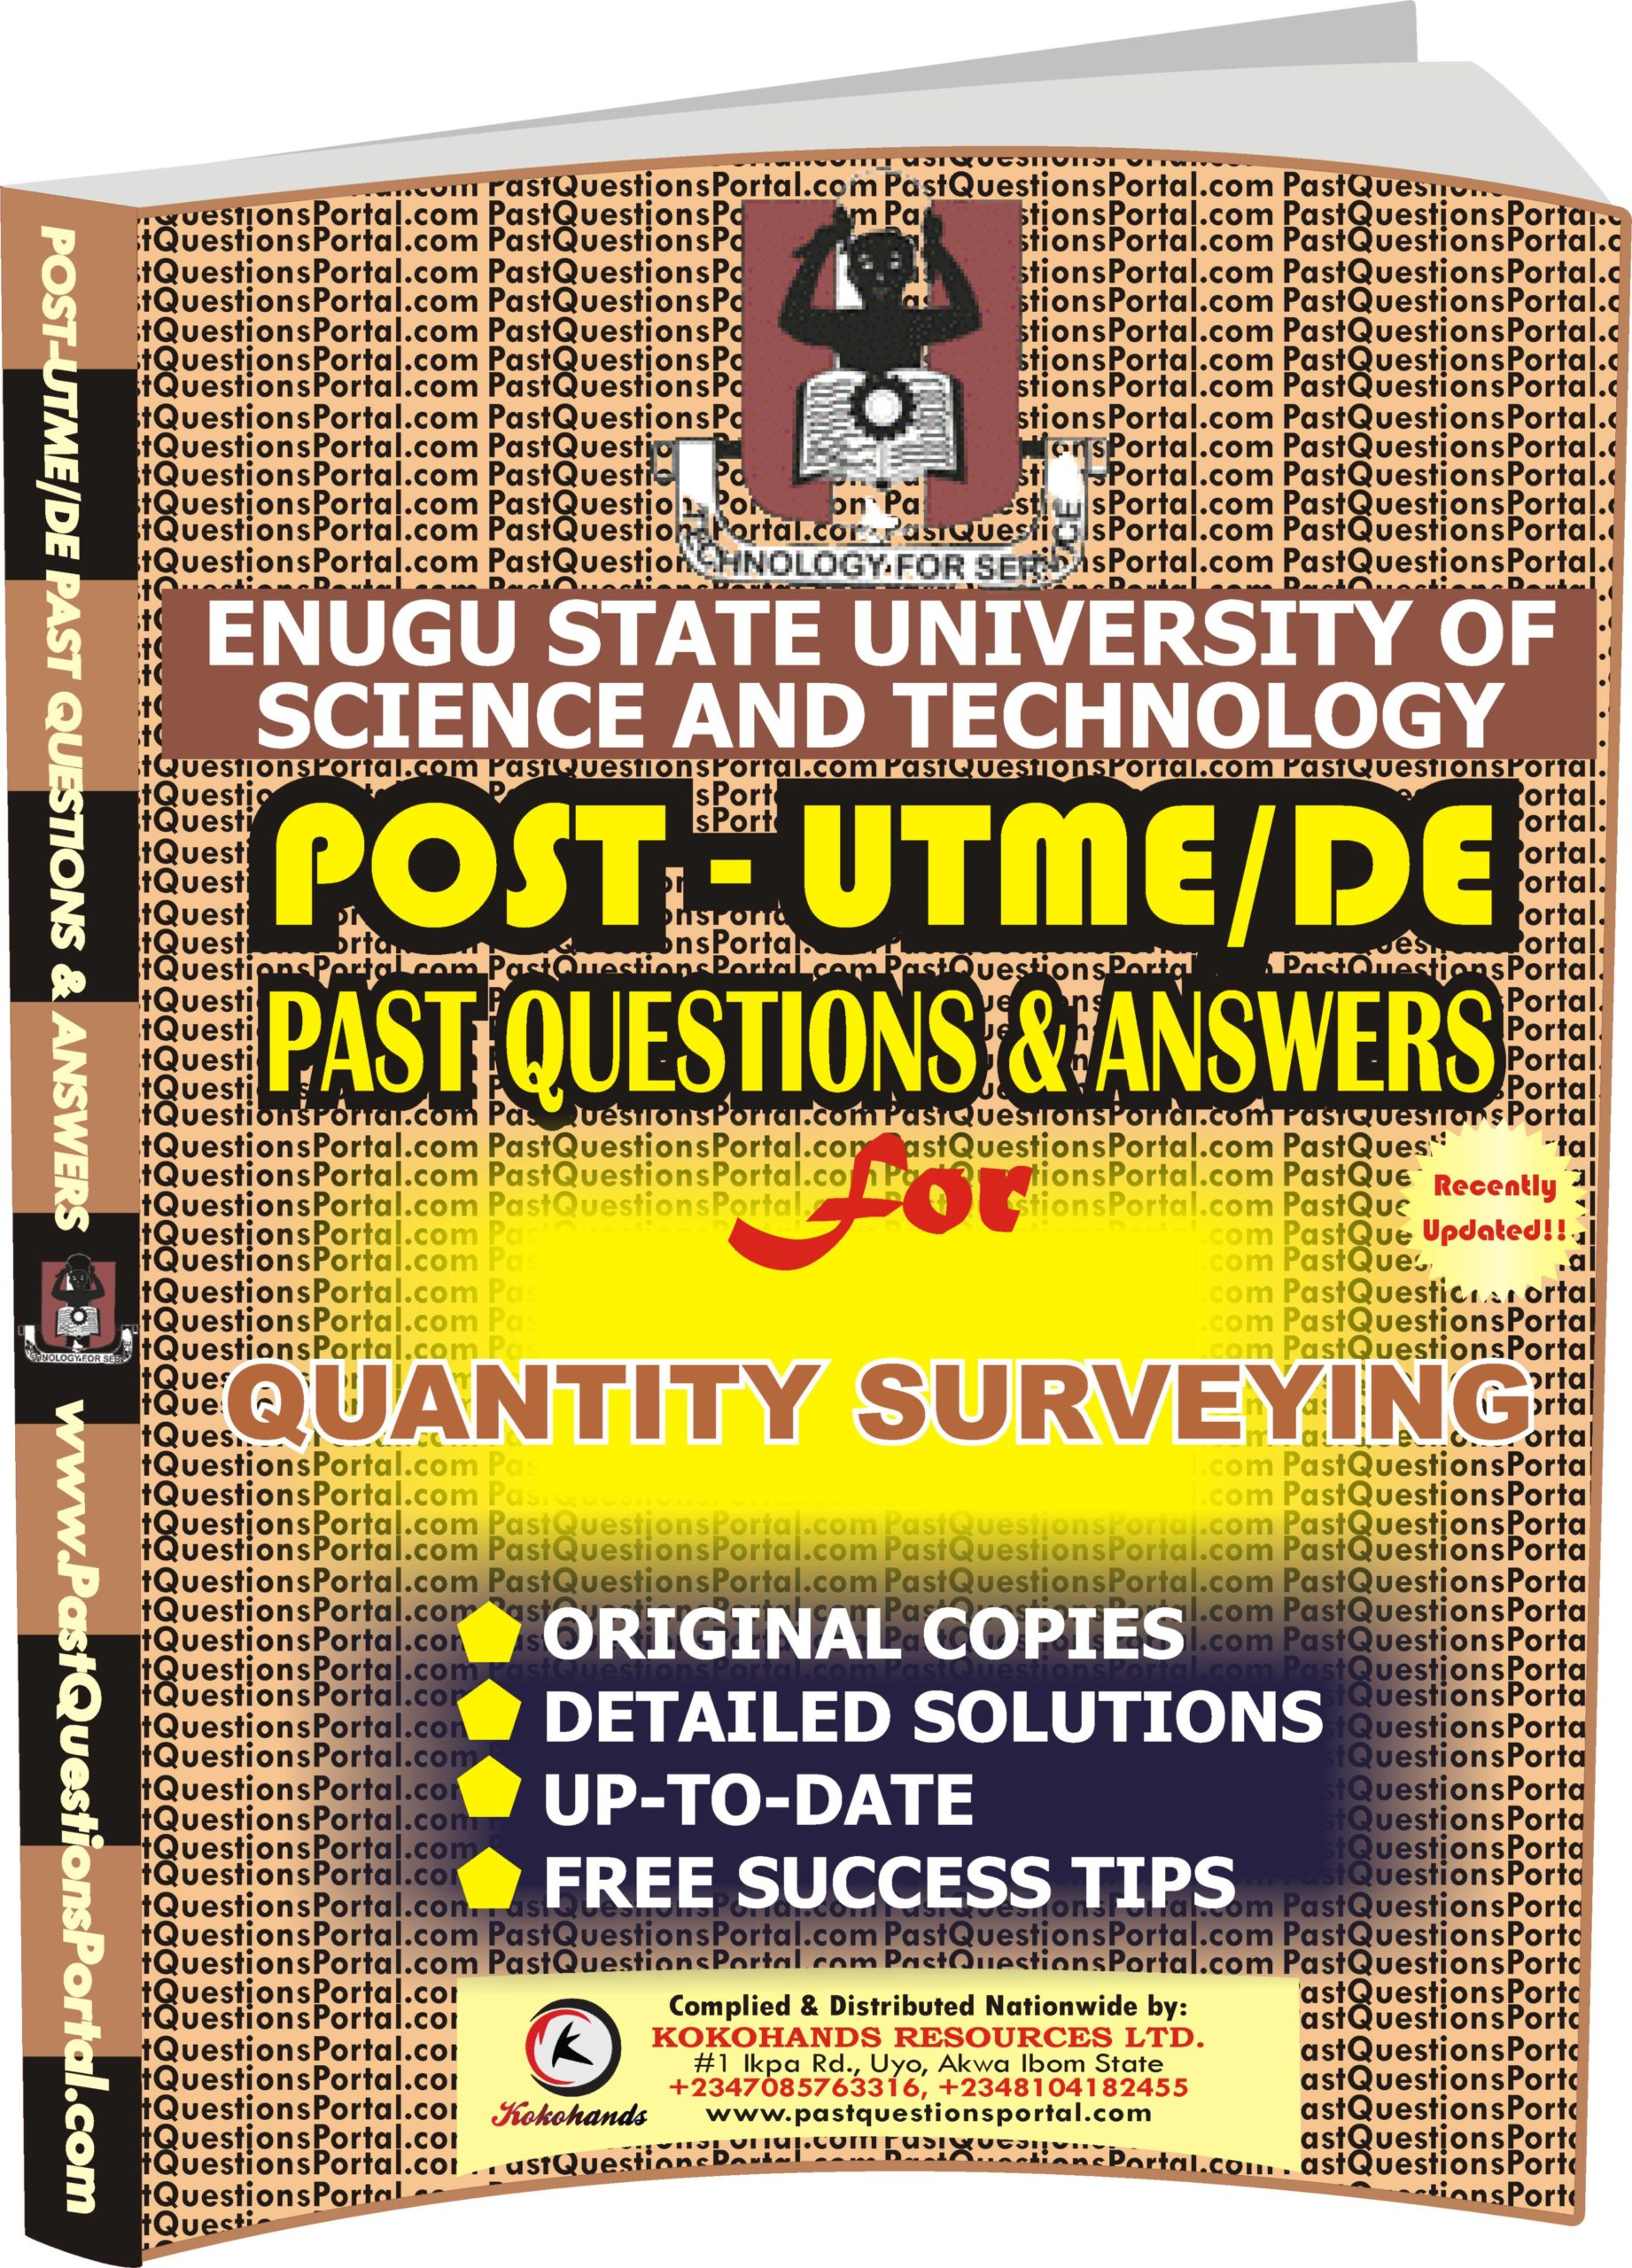 ESUT Post UTME Past Questions for QUANTITY SURVEYING